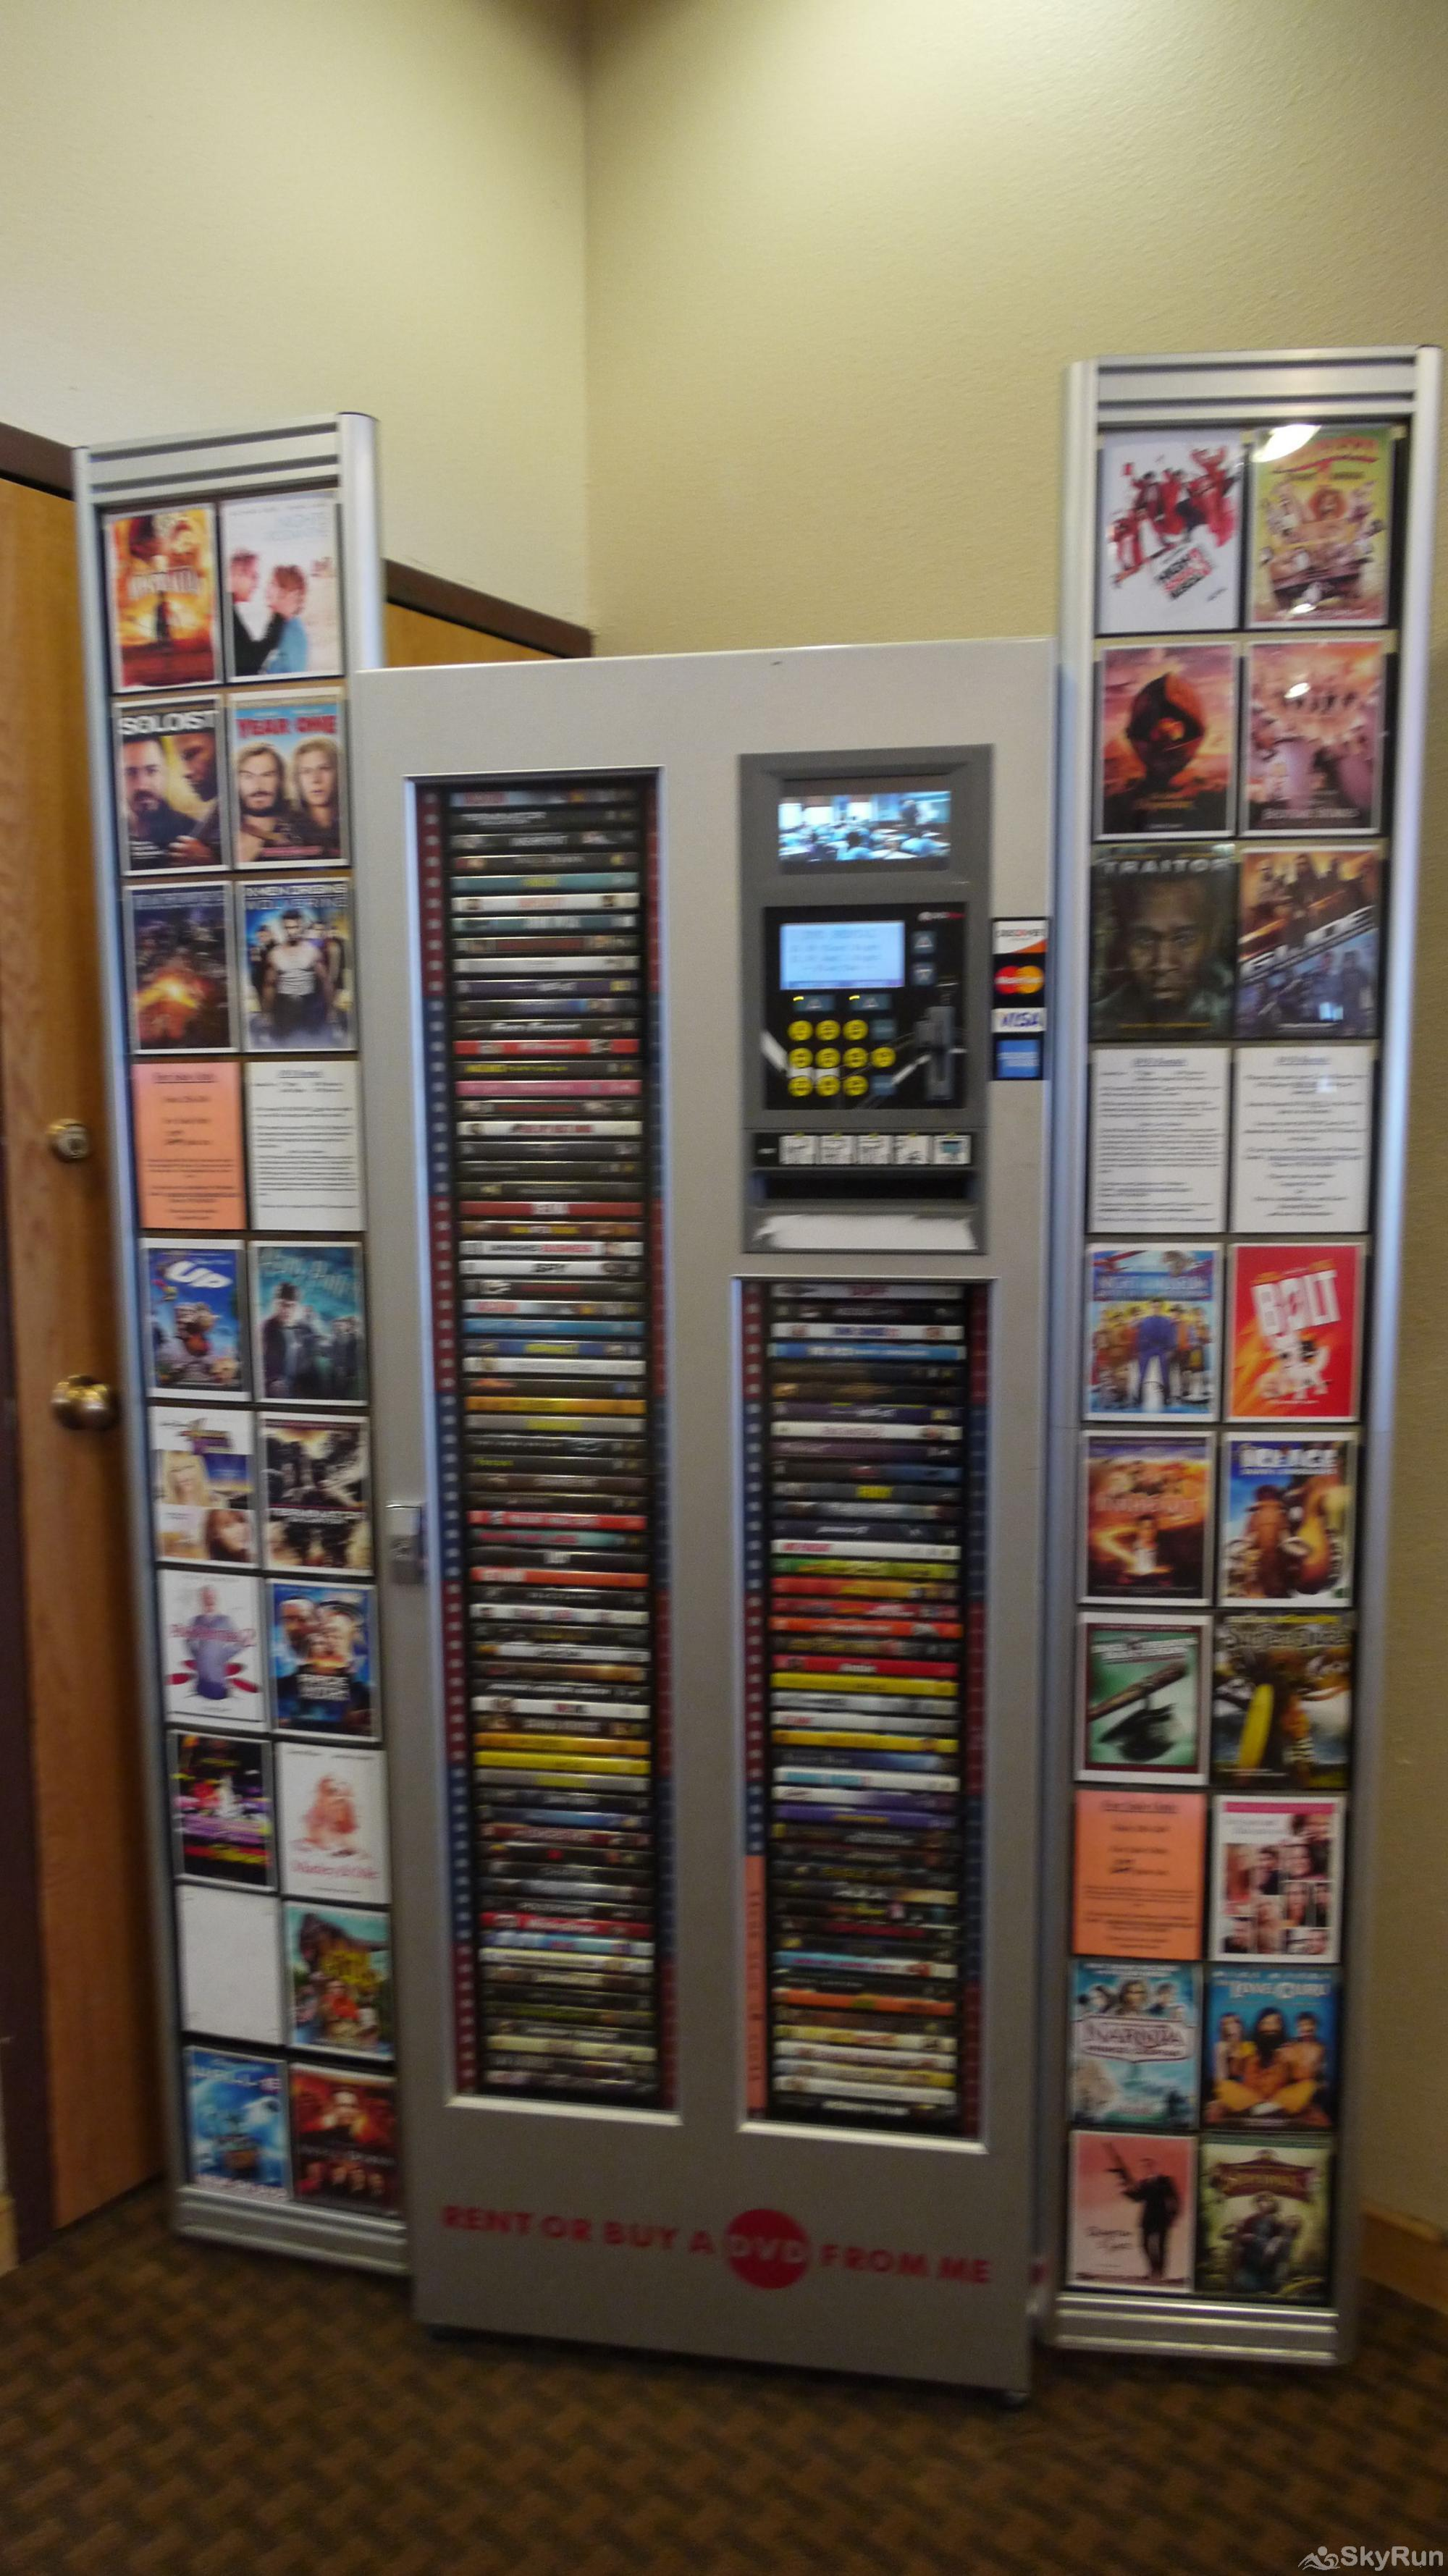 WH107 Wheeler House DVD Rental Machine